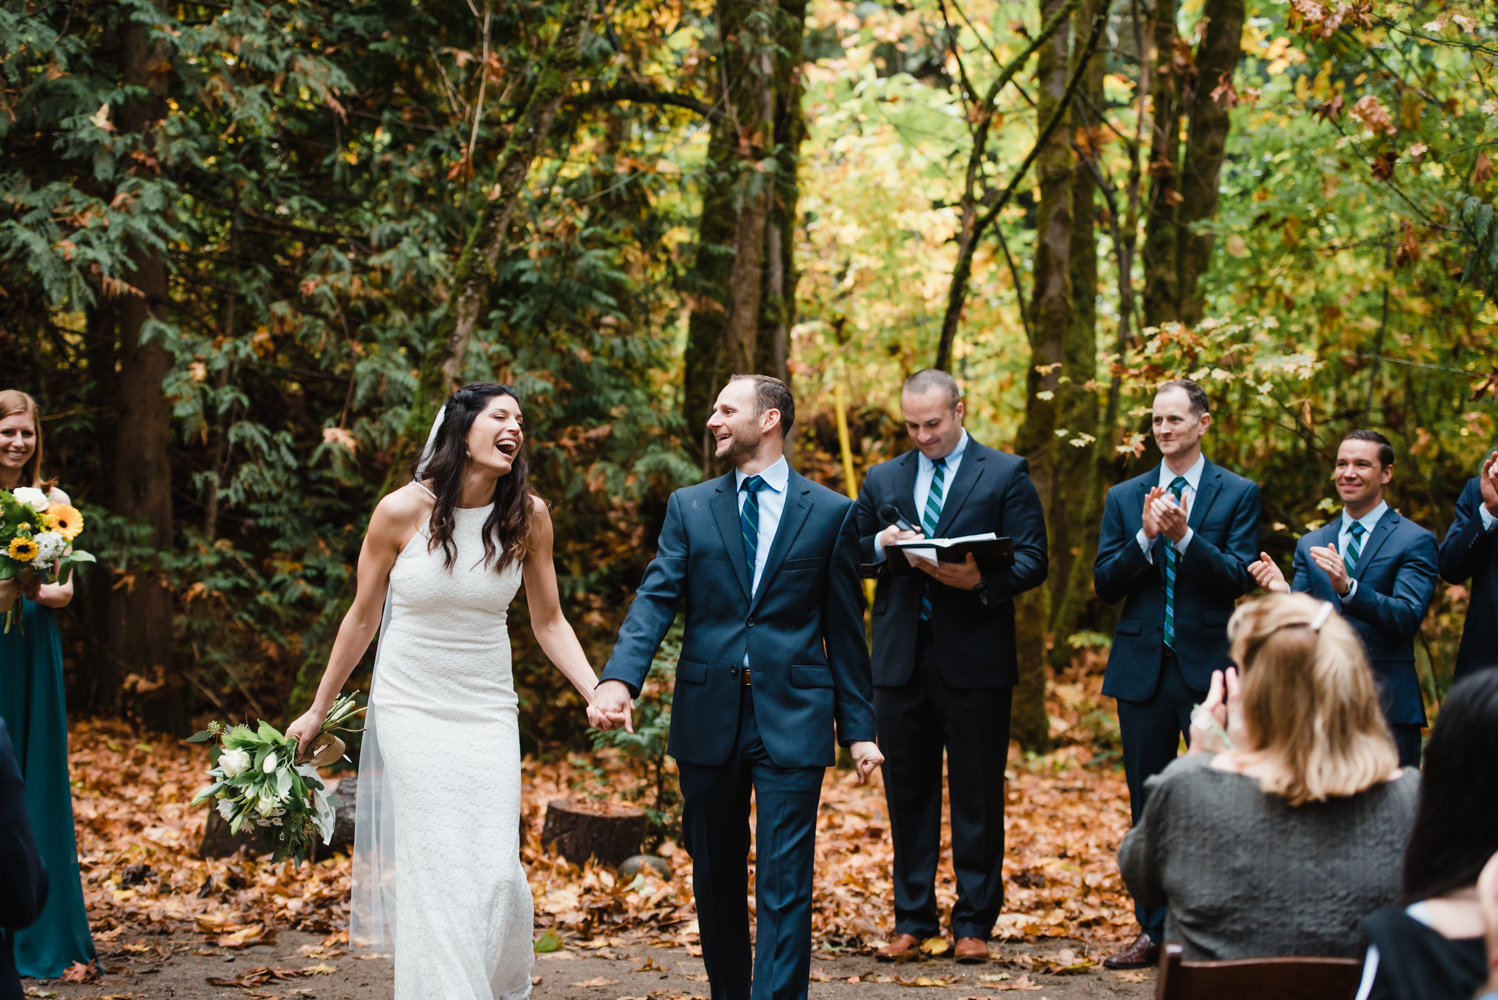 Squamish Wedding Photographer71.jpg